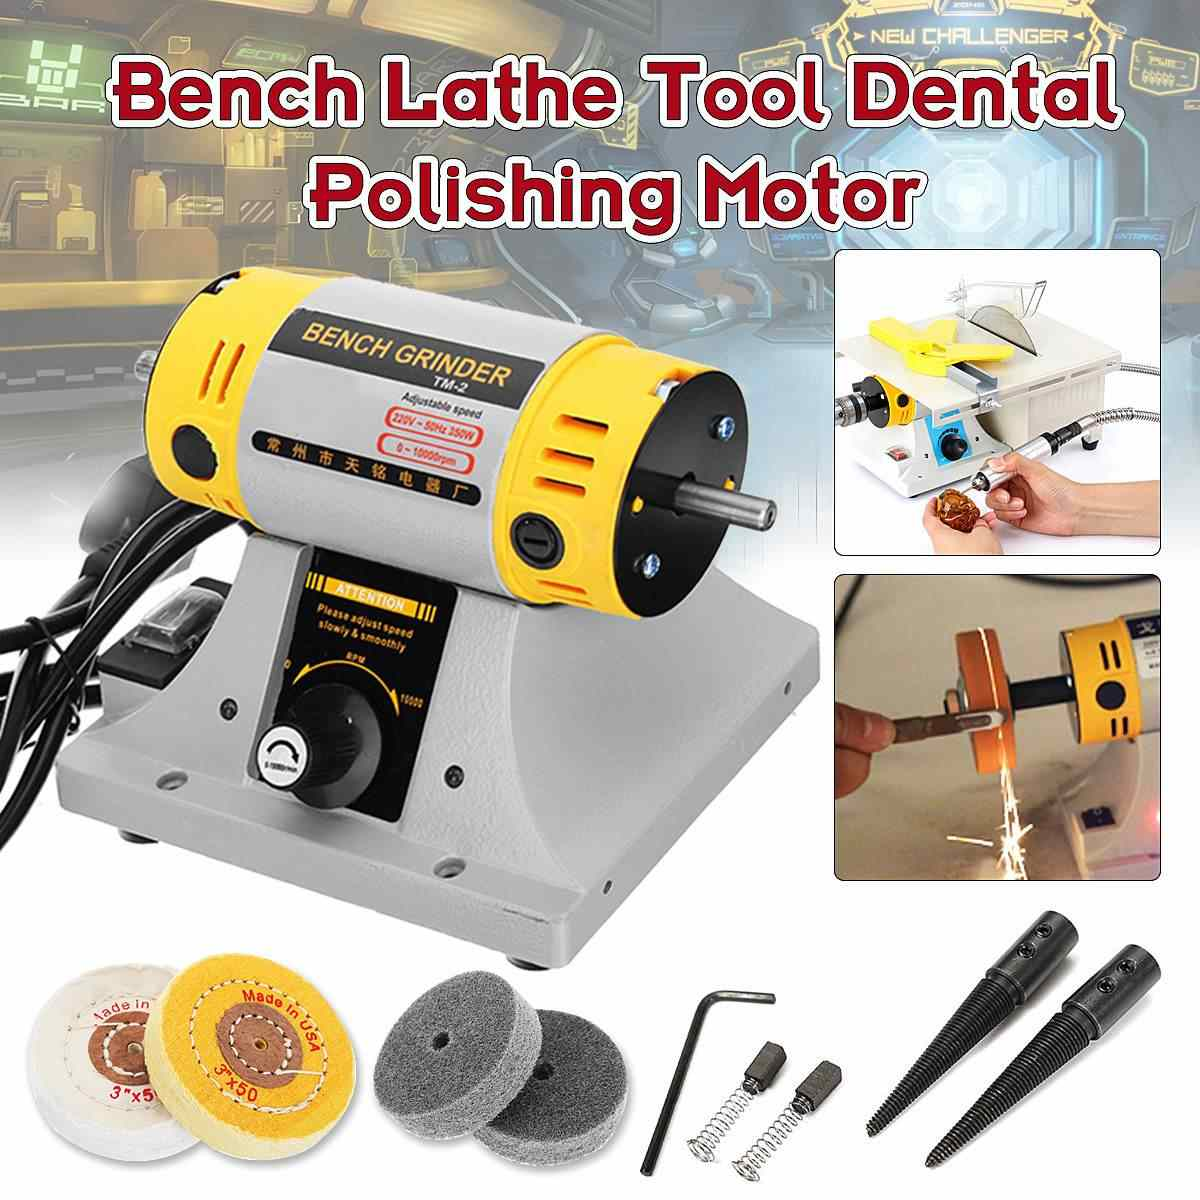 220V 350W Polishing Machine for Jewelry Dental Bench Lathe Machine Motor Grinder With Accessories